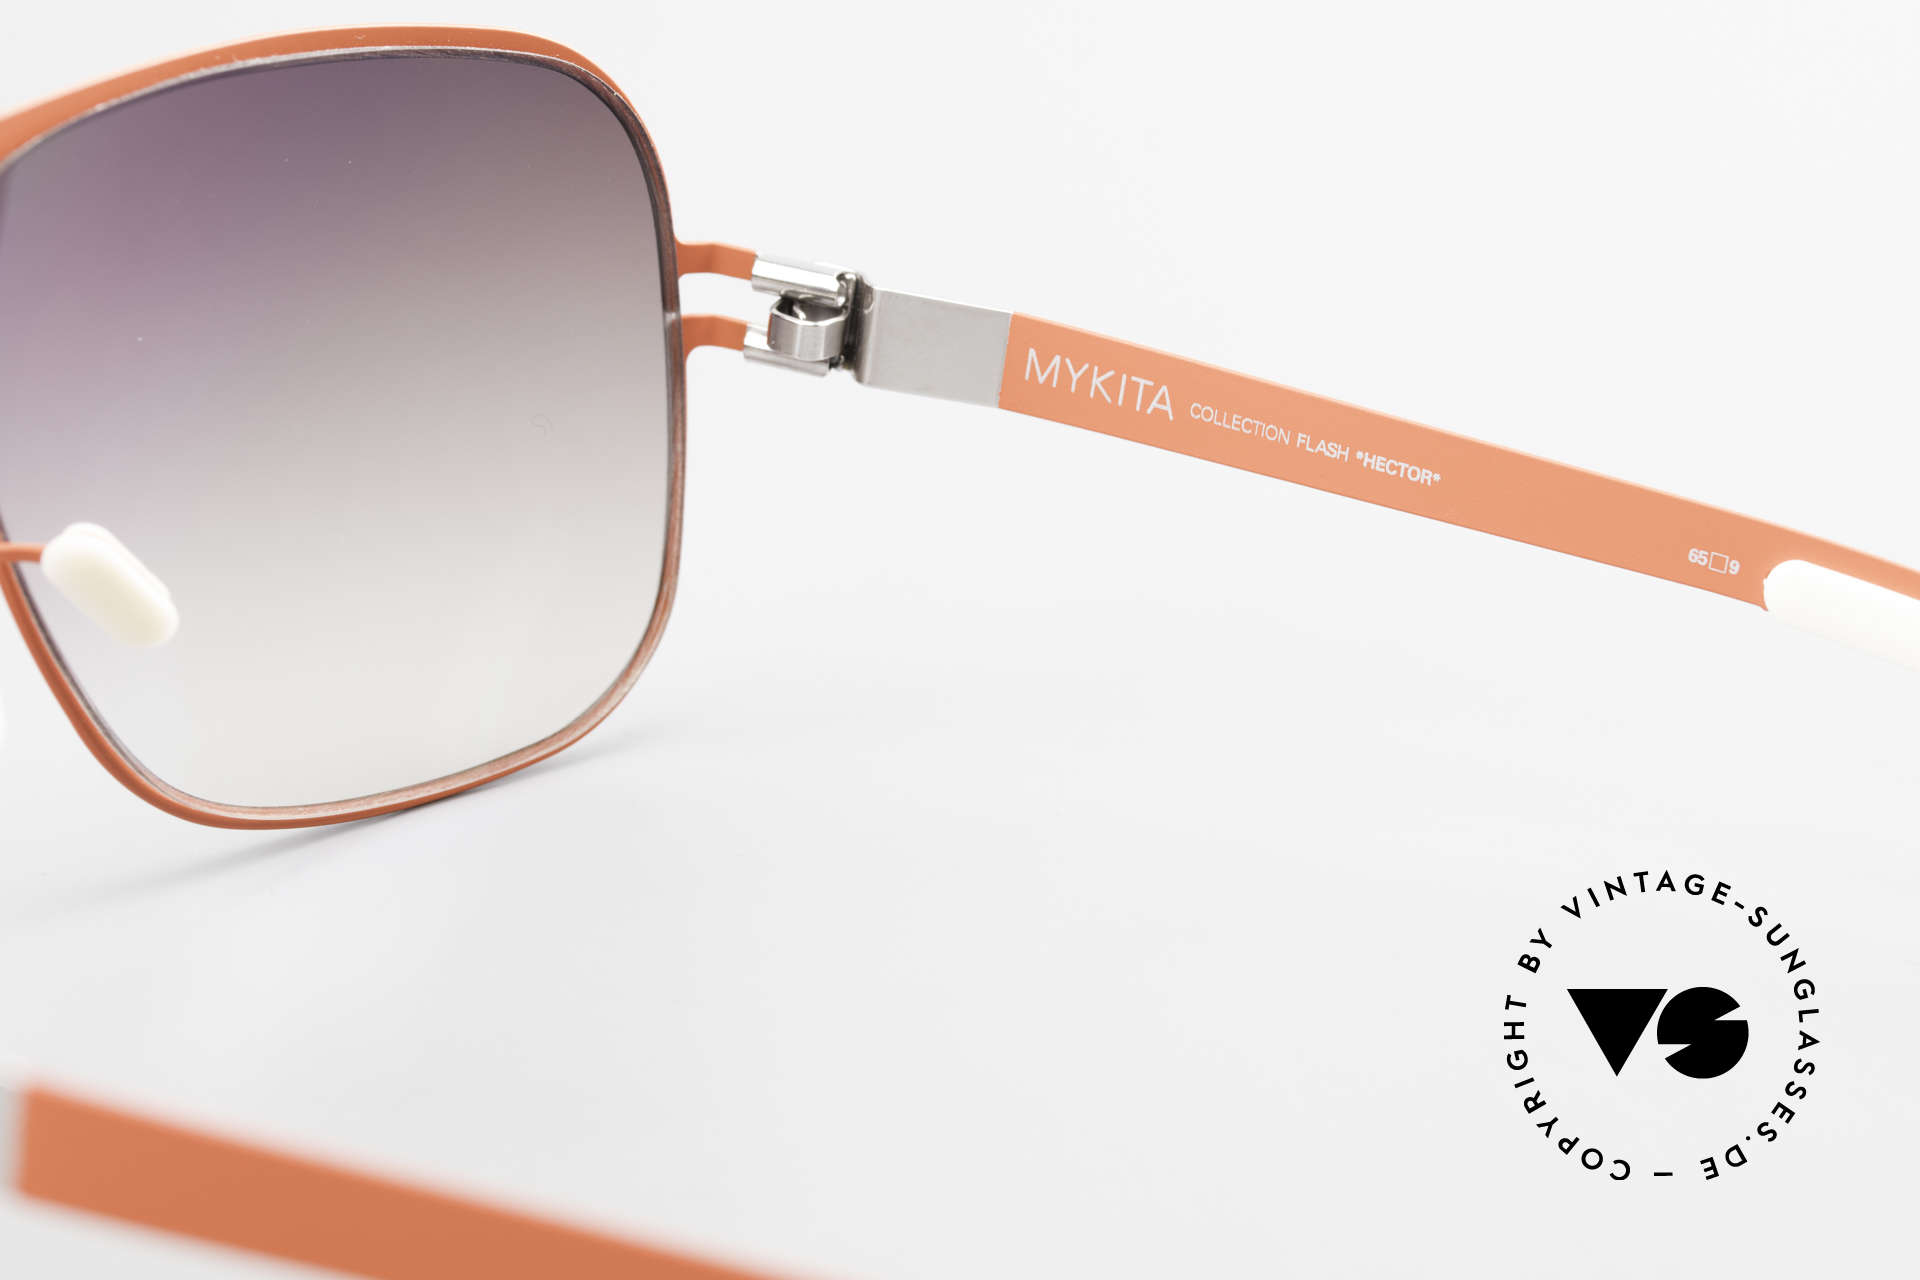 Mykita Hector Men's Aviator Sunglasses 2009's, thus, now available from us (unworn and with orig. case), Made for Men